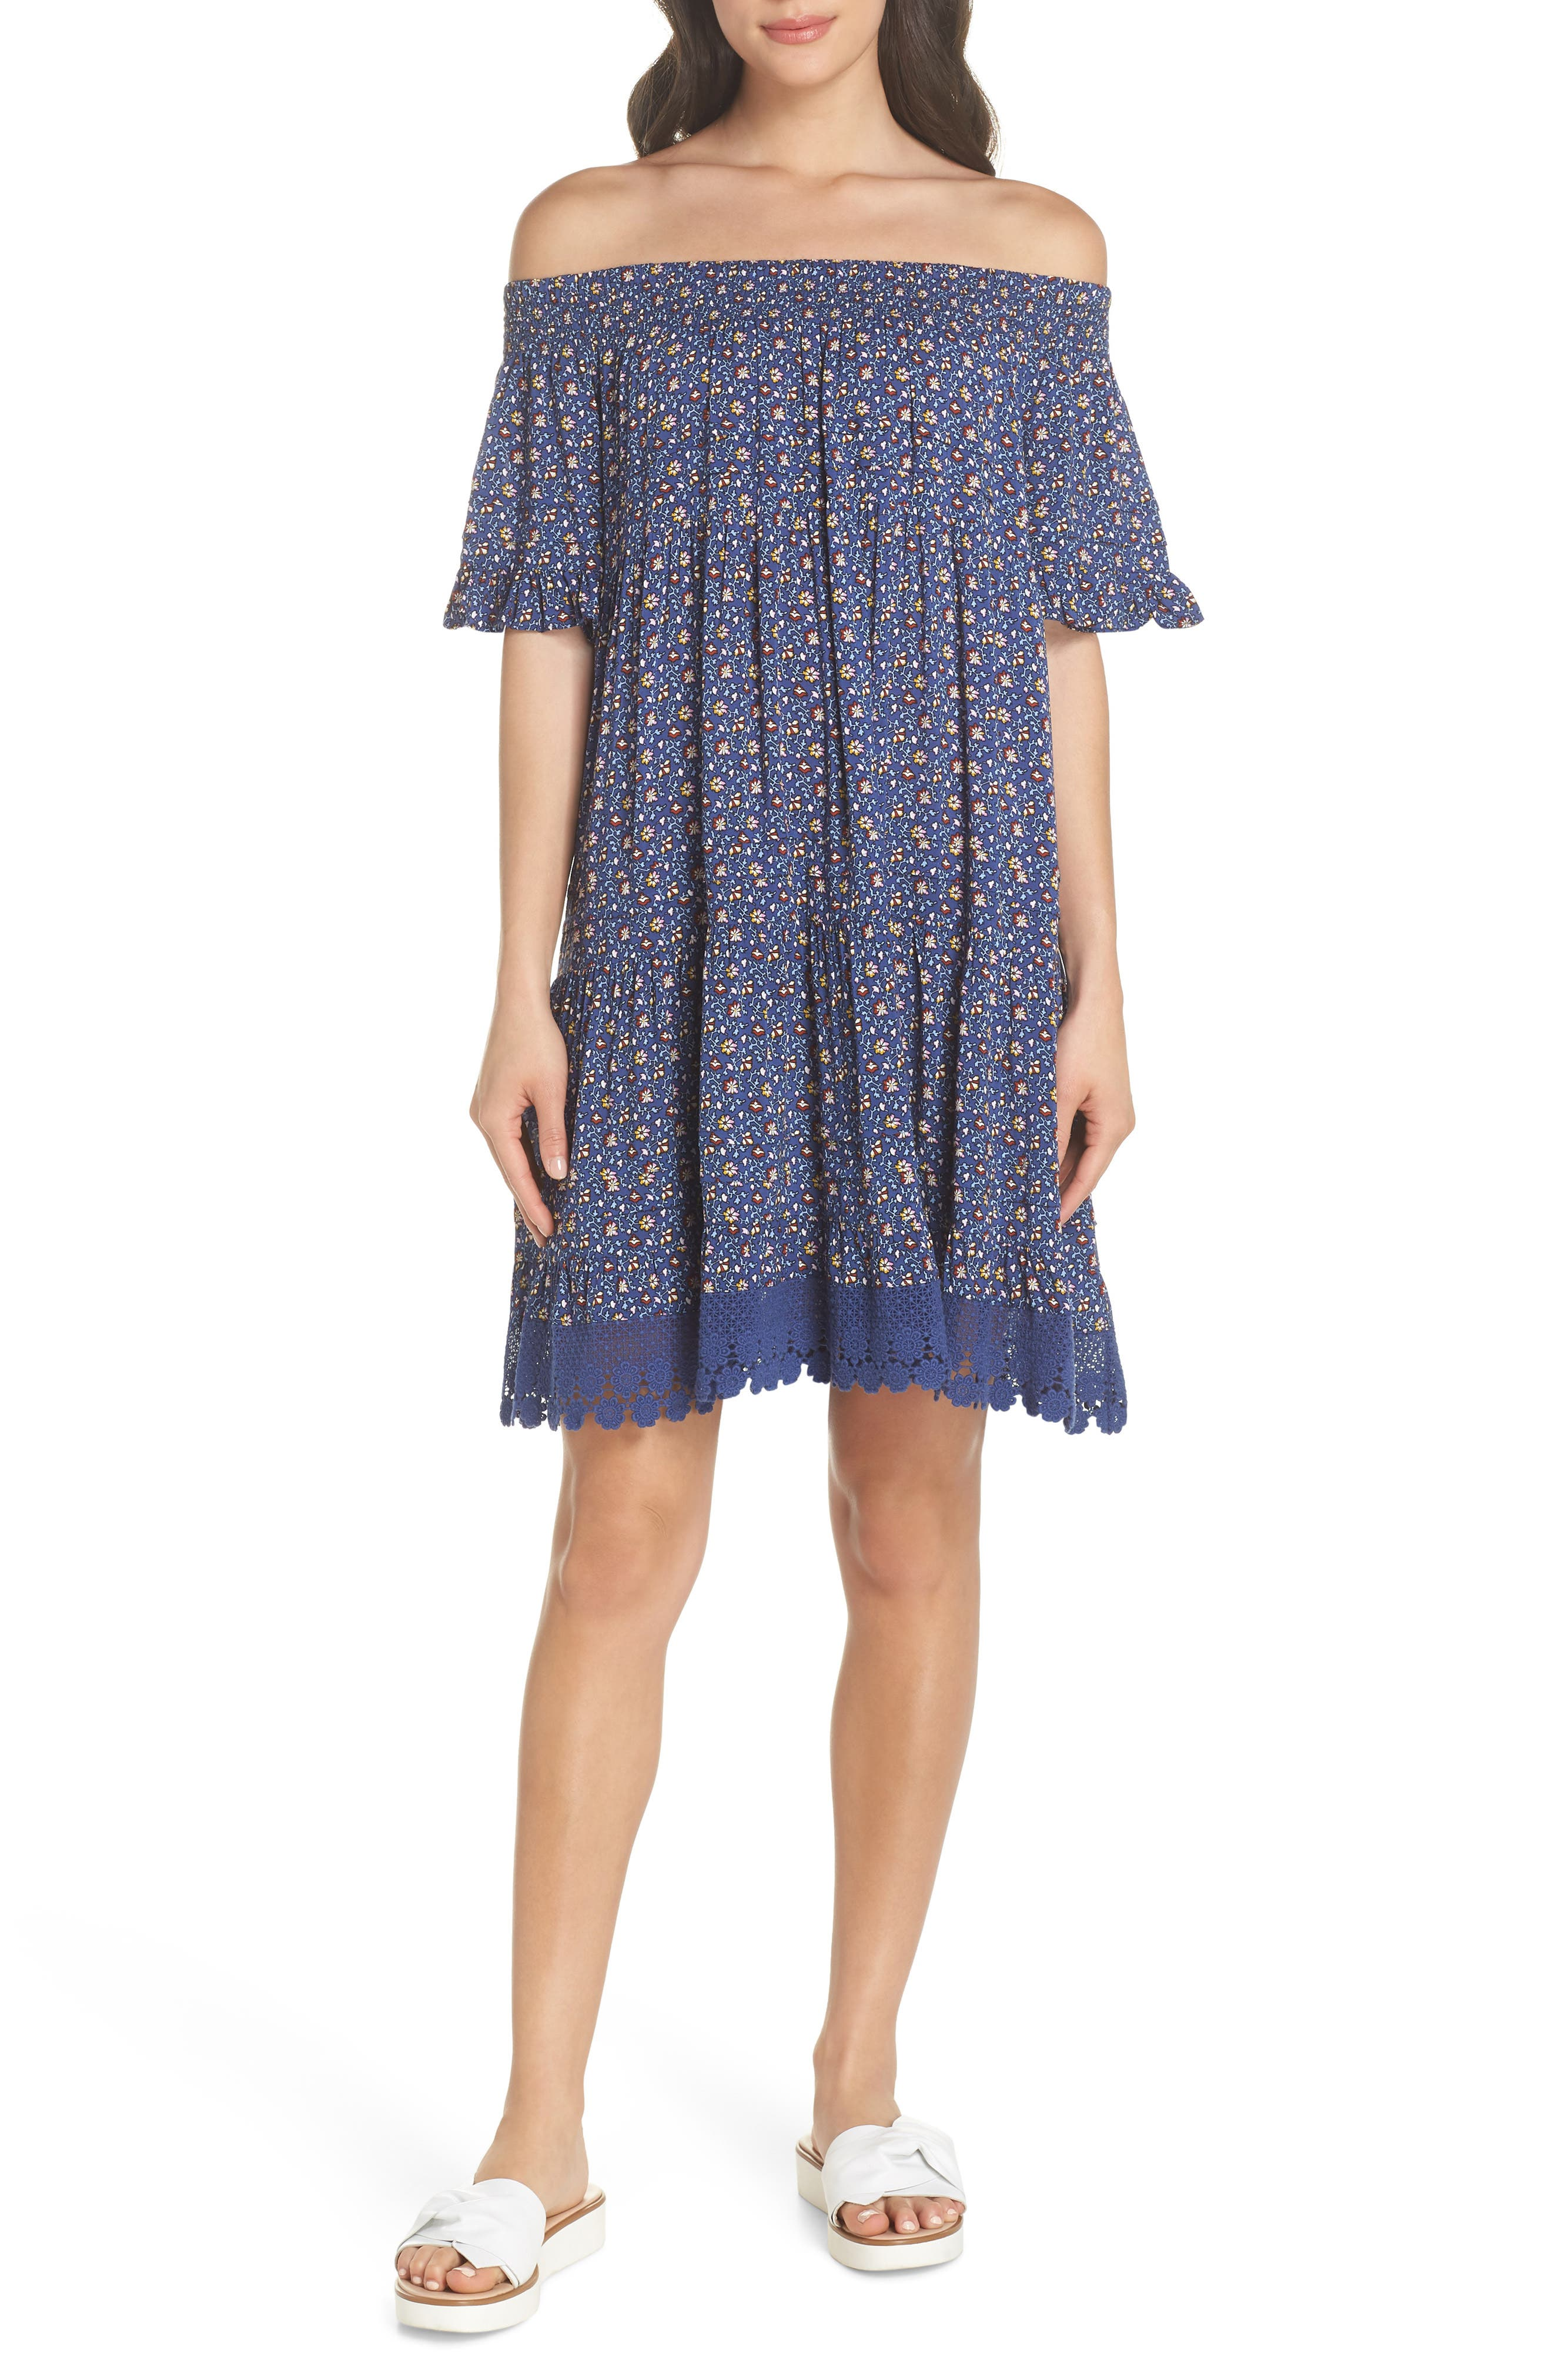 Wild Pansy Off the Shoulder Cover-Up Dress,                             Main thumbnail 1, color,                             Navy Wild Pansy